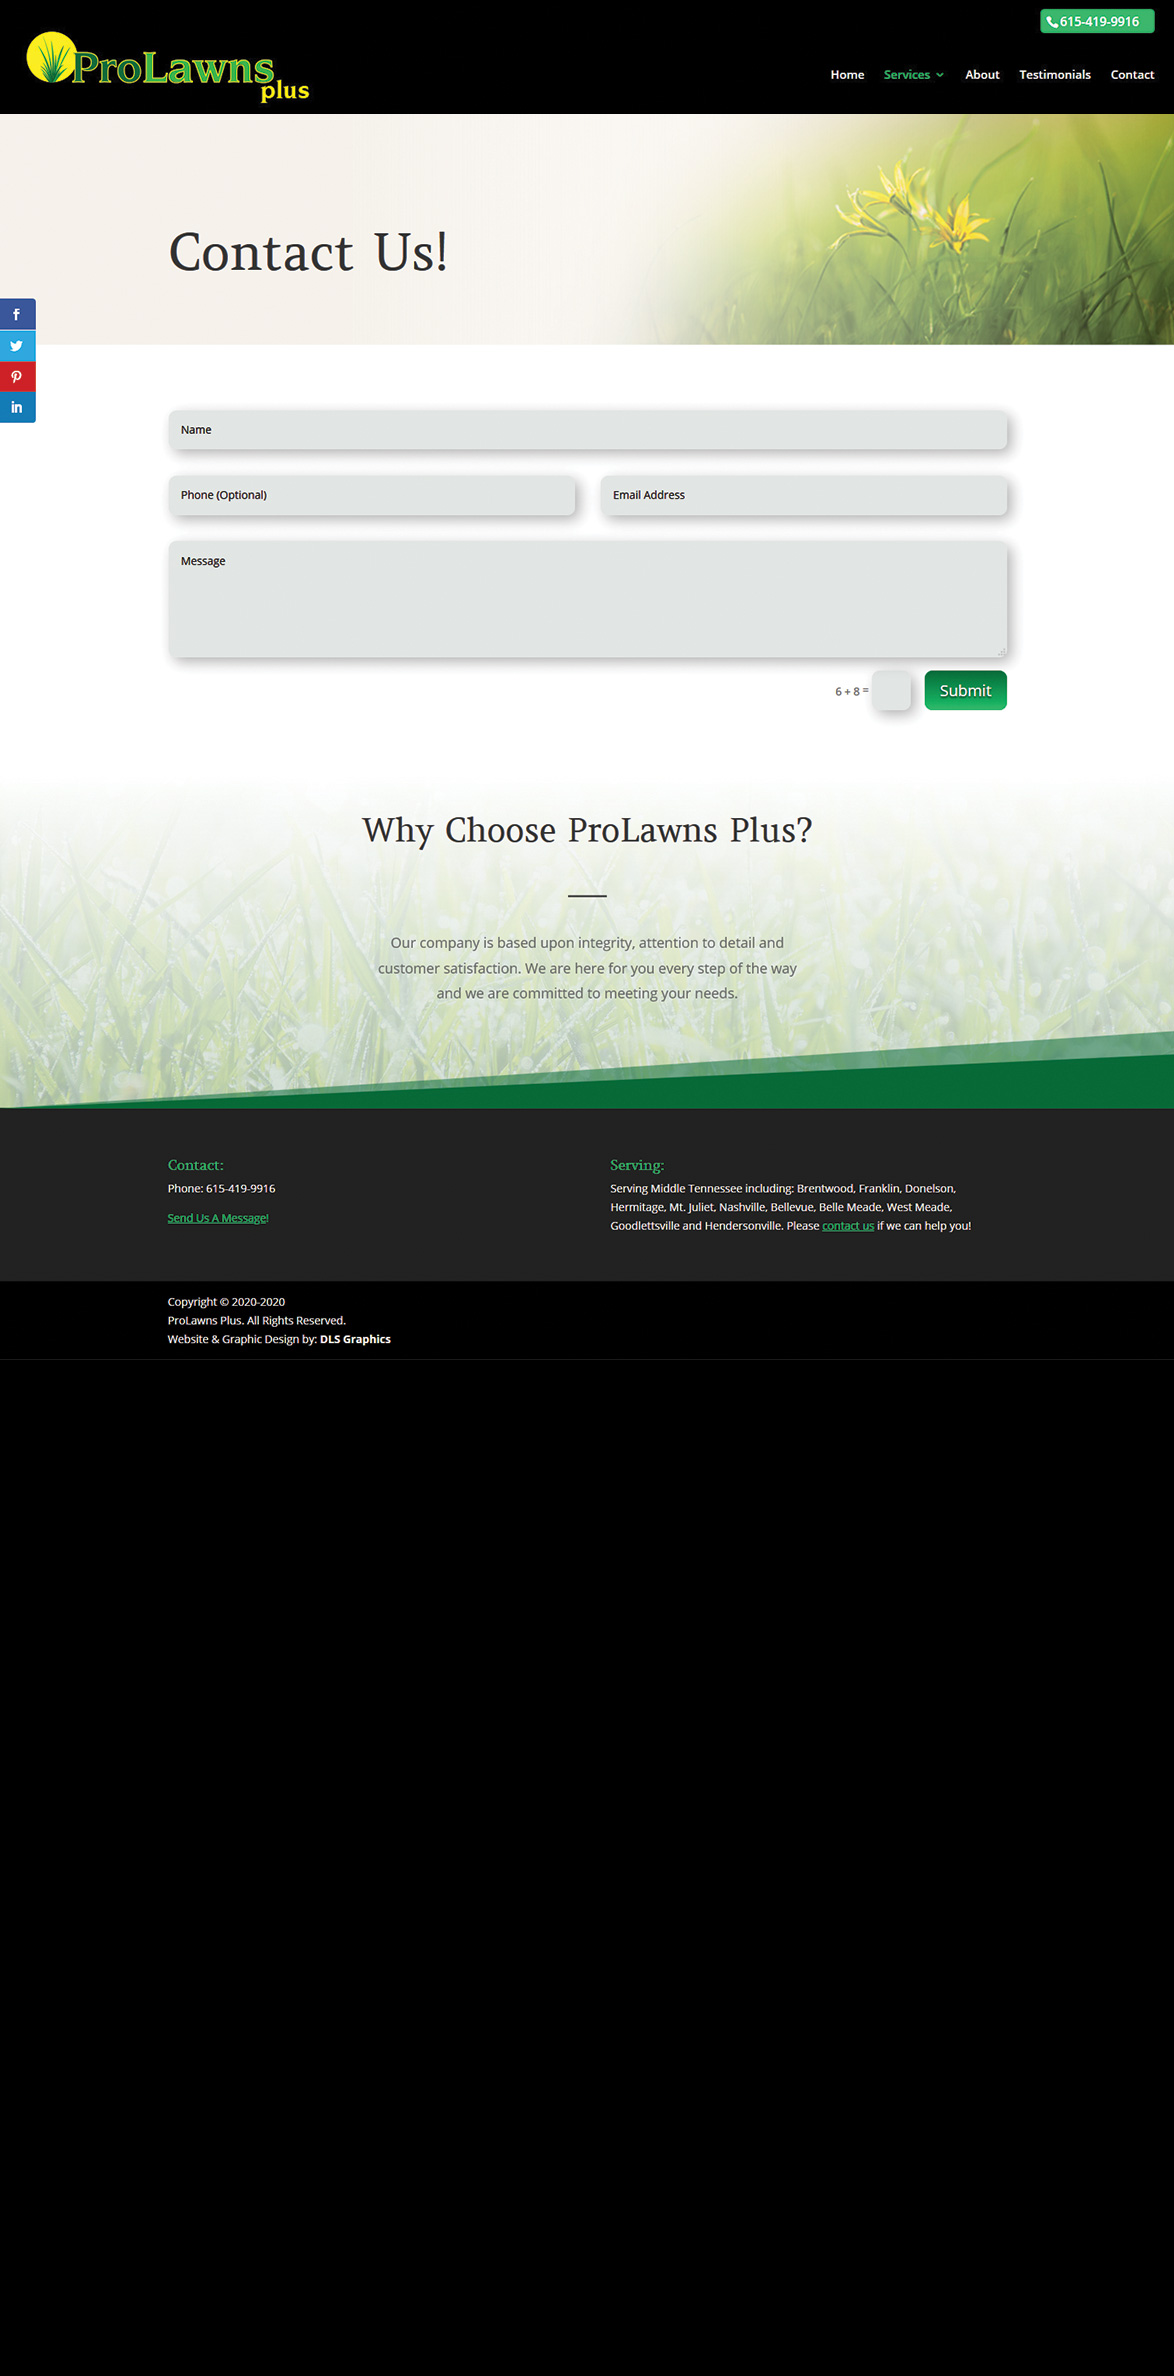 ProLawns Plus Contact